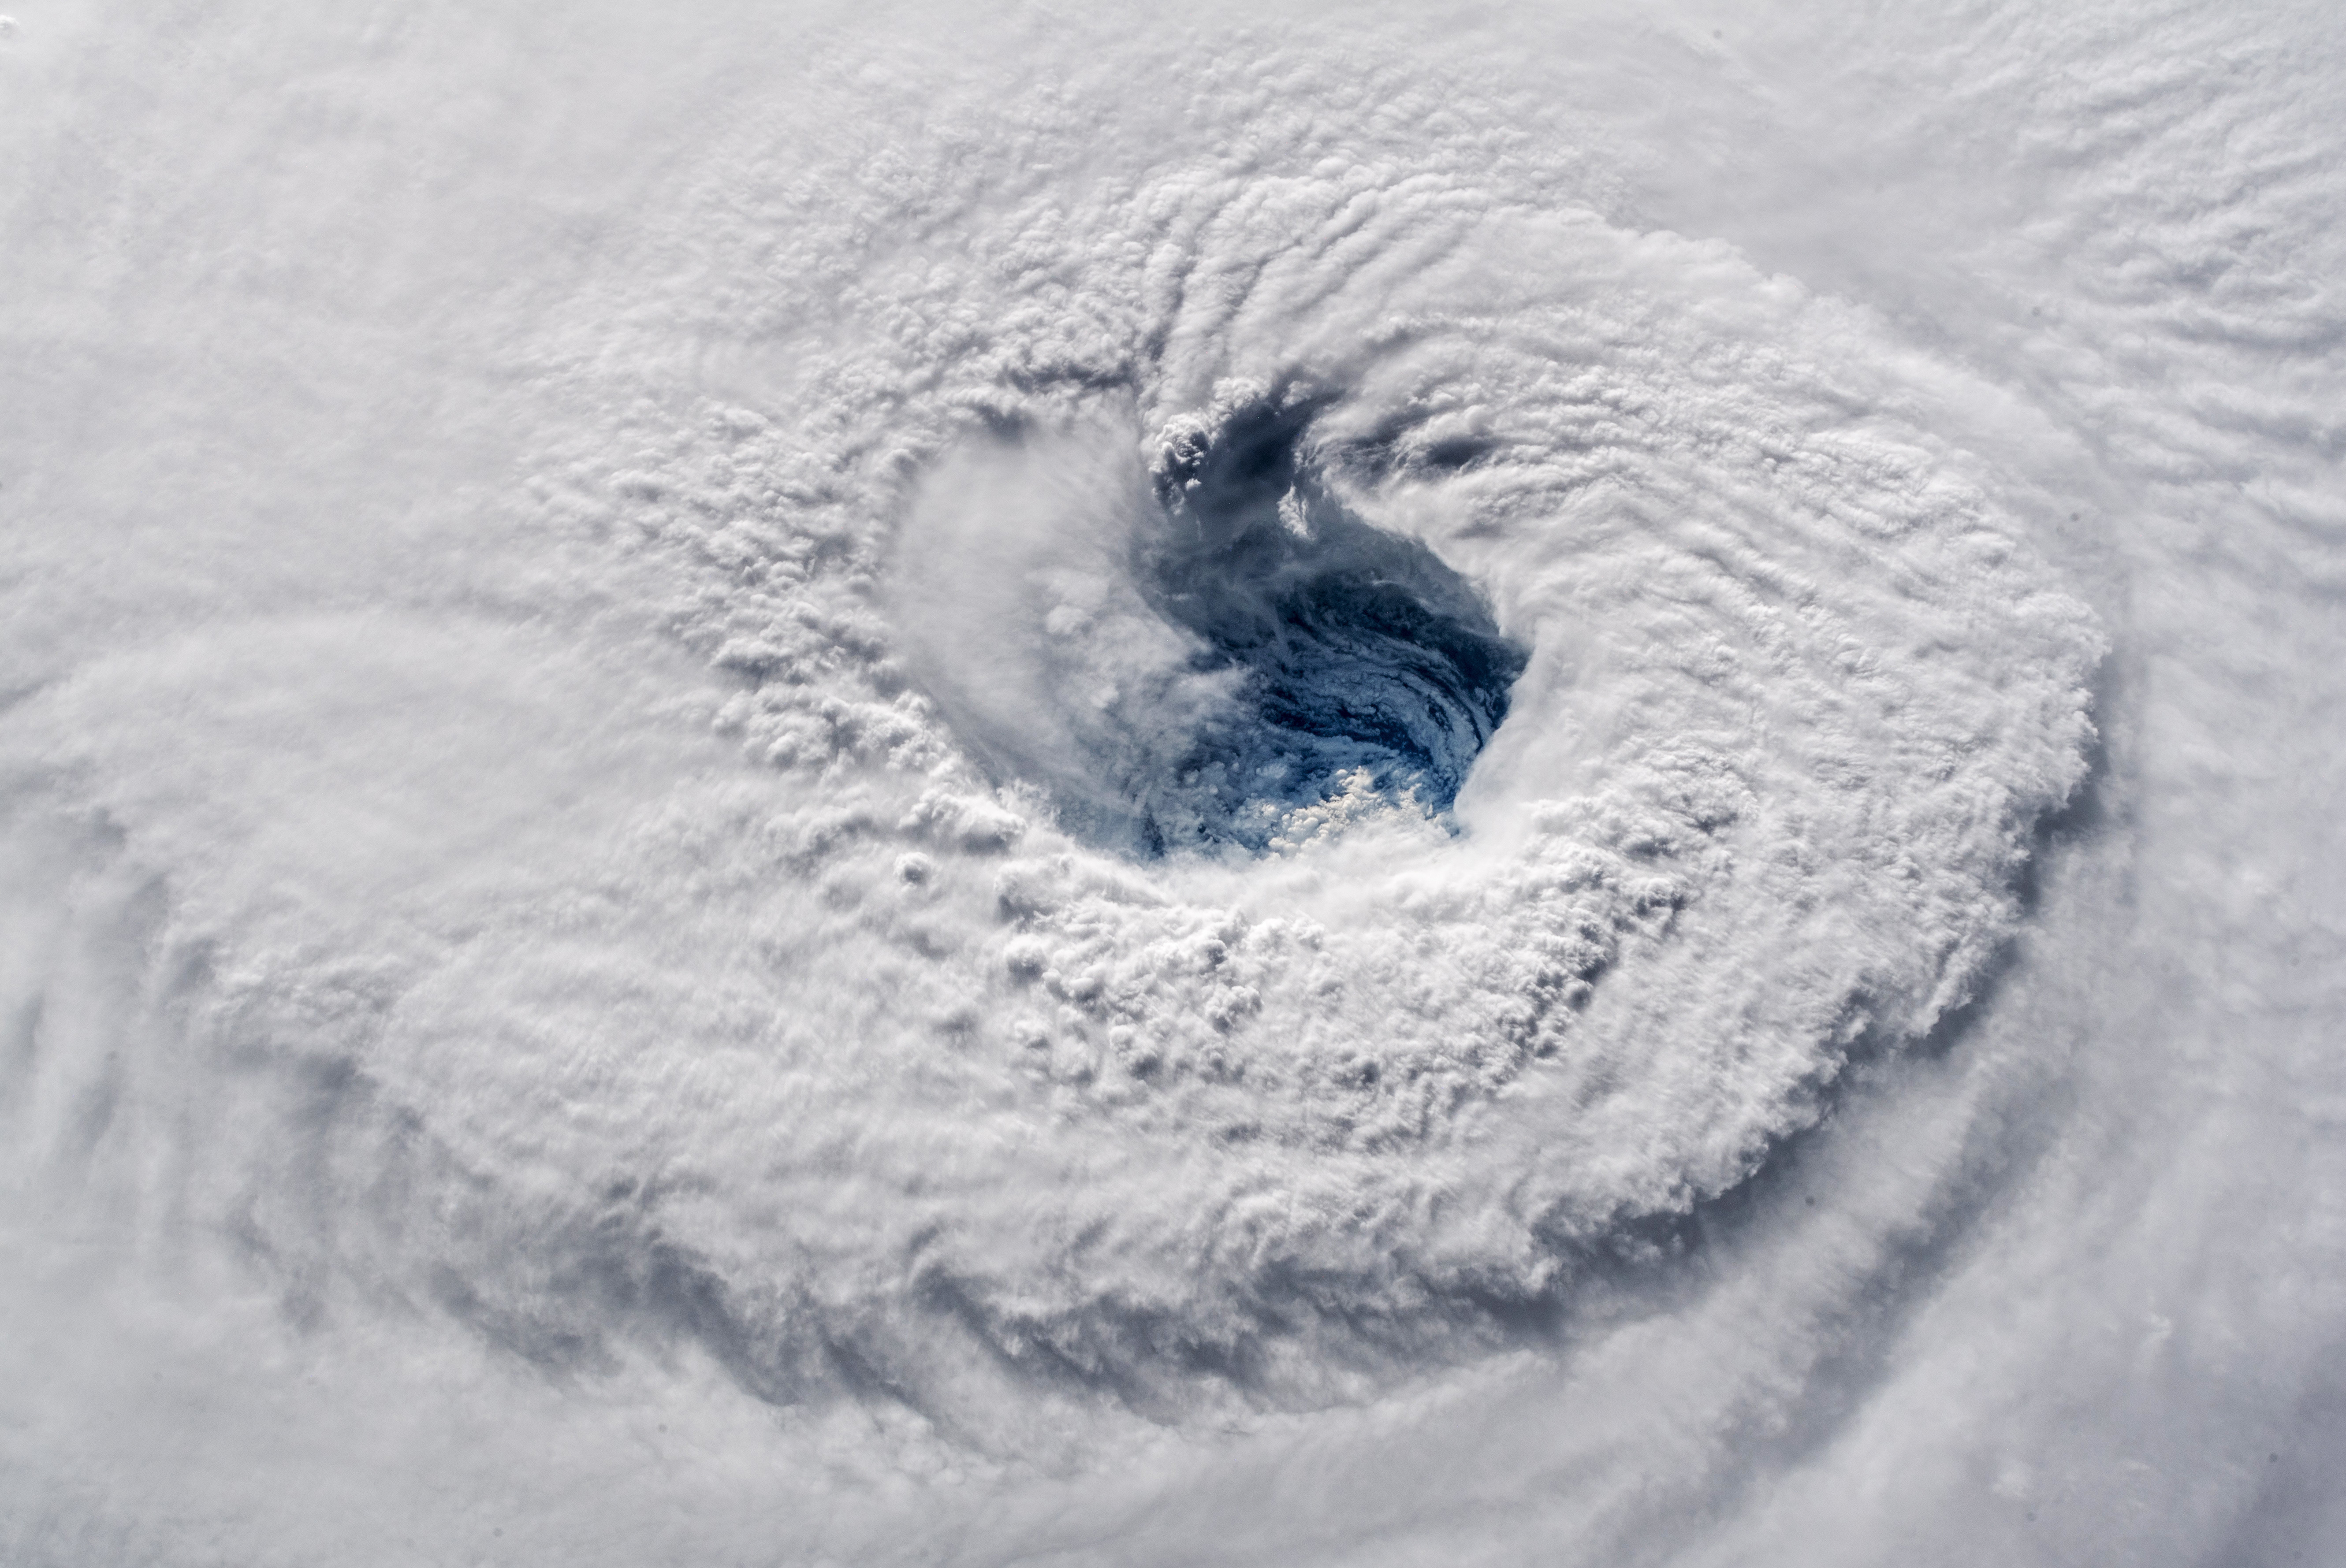 """In this Sept. 12, 2018 photo provided by NASA, Hurricane Florence churns over the Atlantic Ocean heading for the U.S. east coast as seen from the International Space Station. Astronaut Alexander Gerst, who shot the photo, tweeted: """"Ever stared down the gaping eye of a category 4 hurricane? It's chilling, even from space."""""""